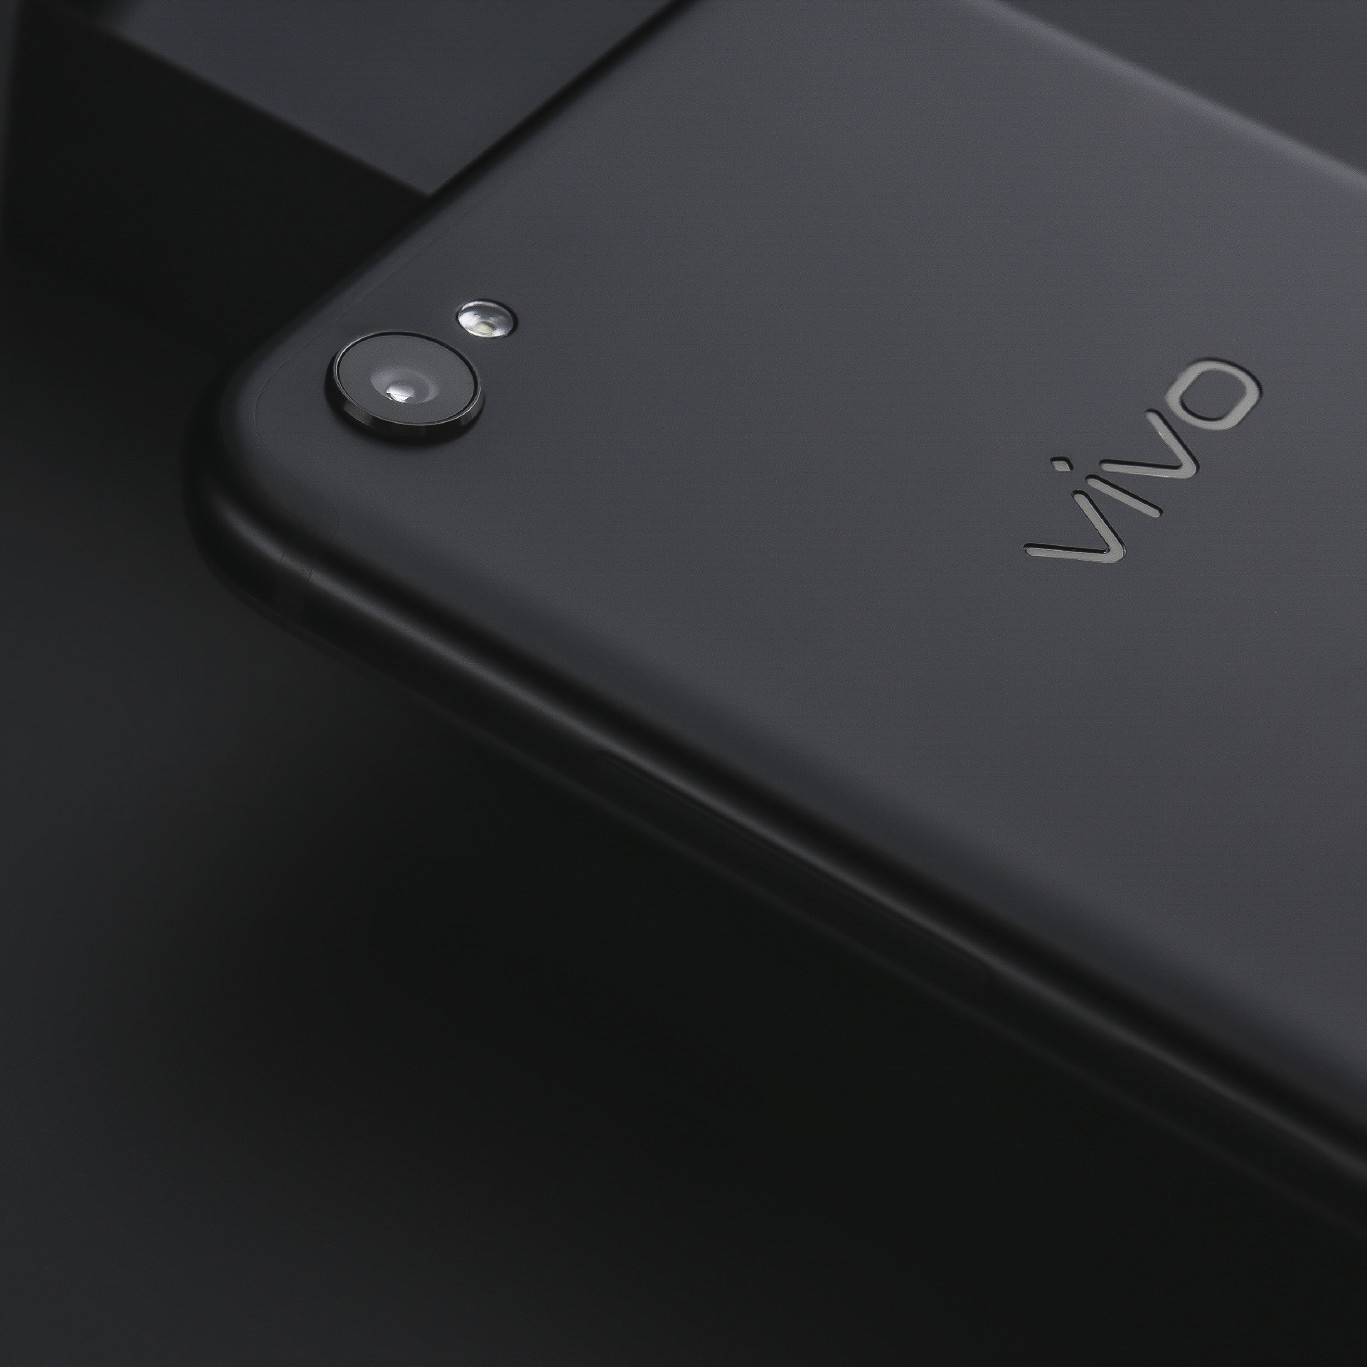 Vivo V5 Plus matte black colour option launched: Key specifications and price